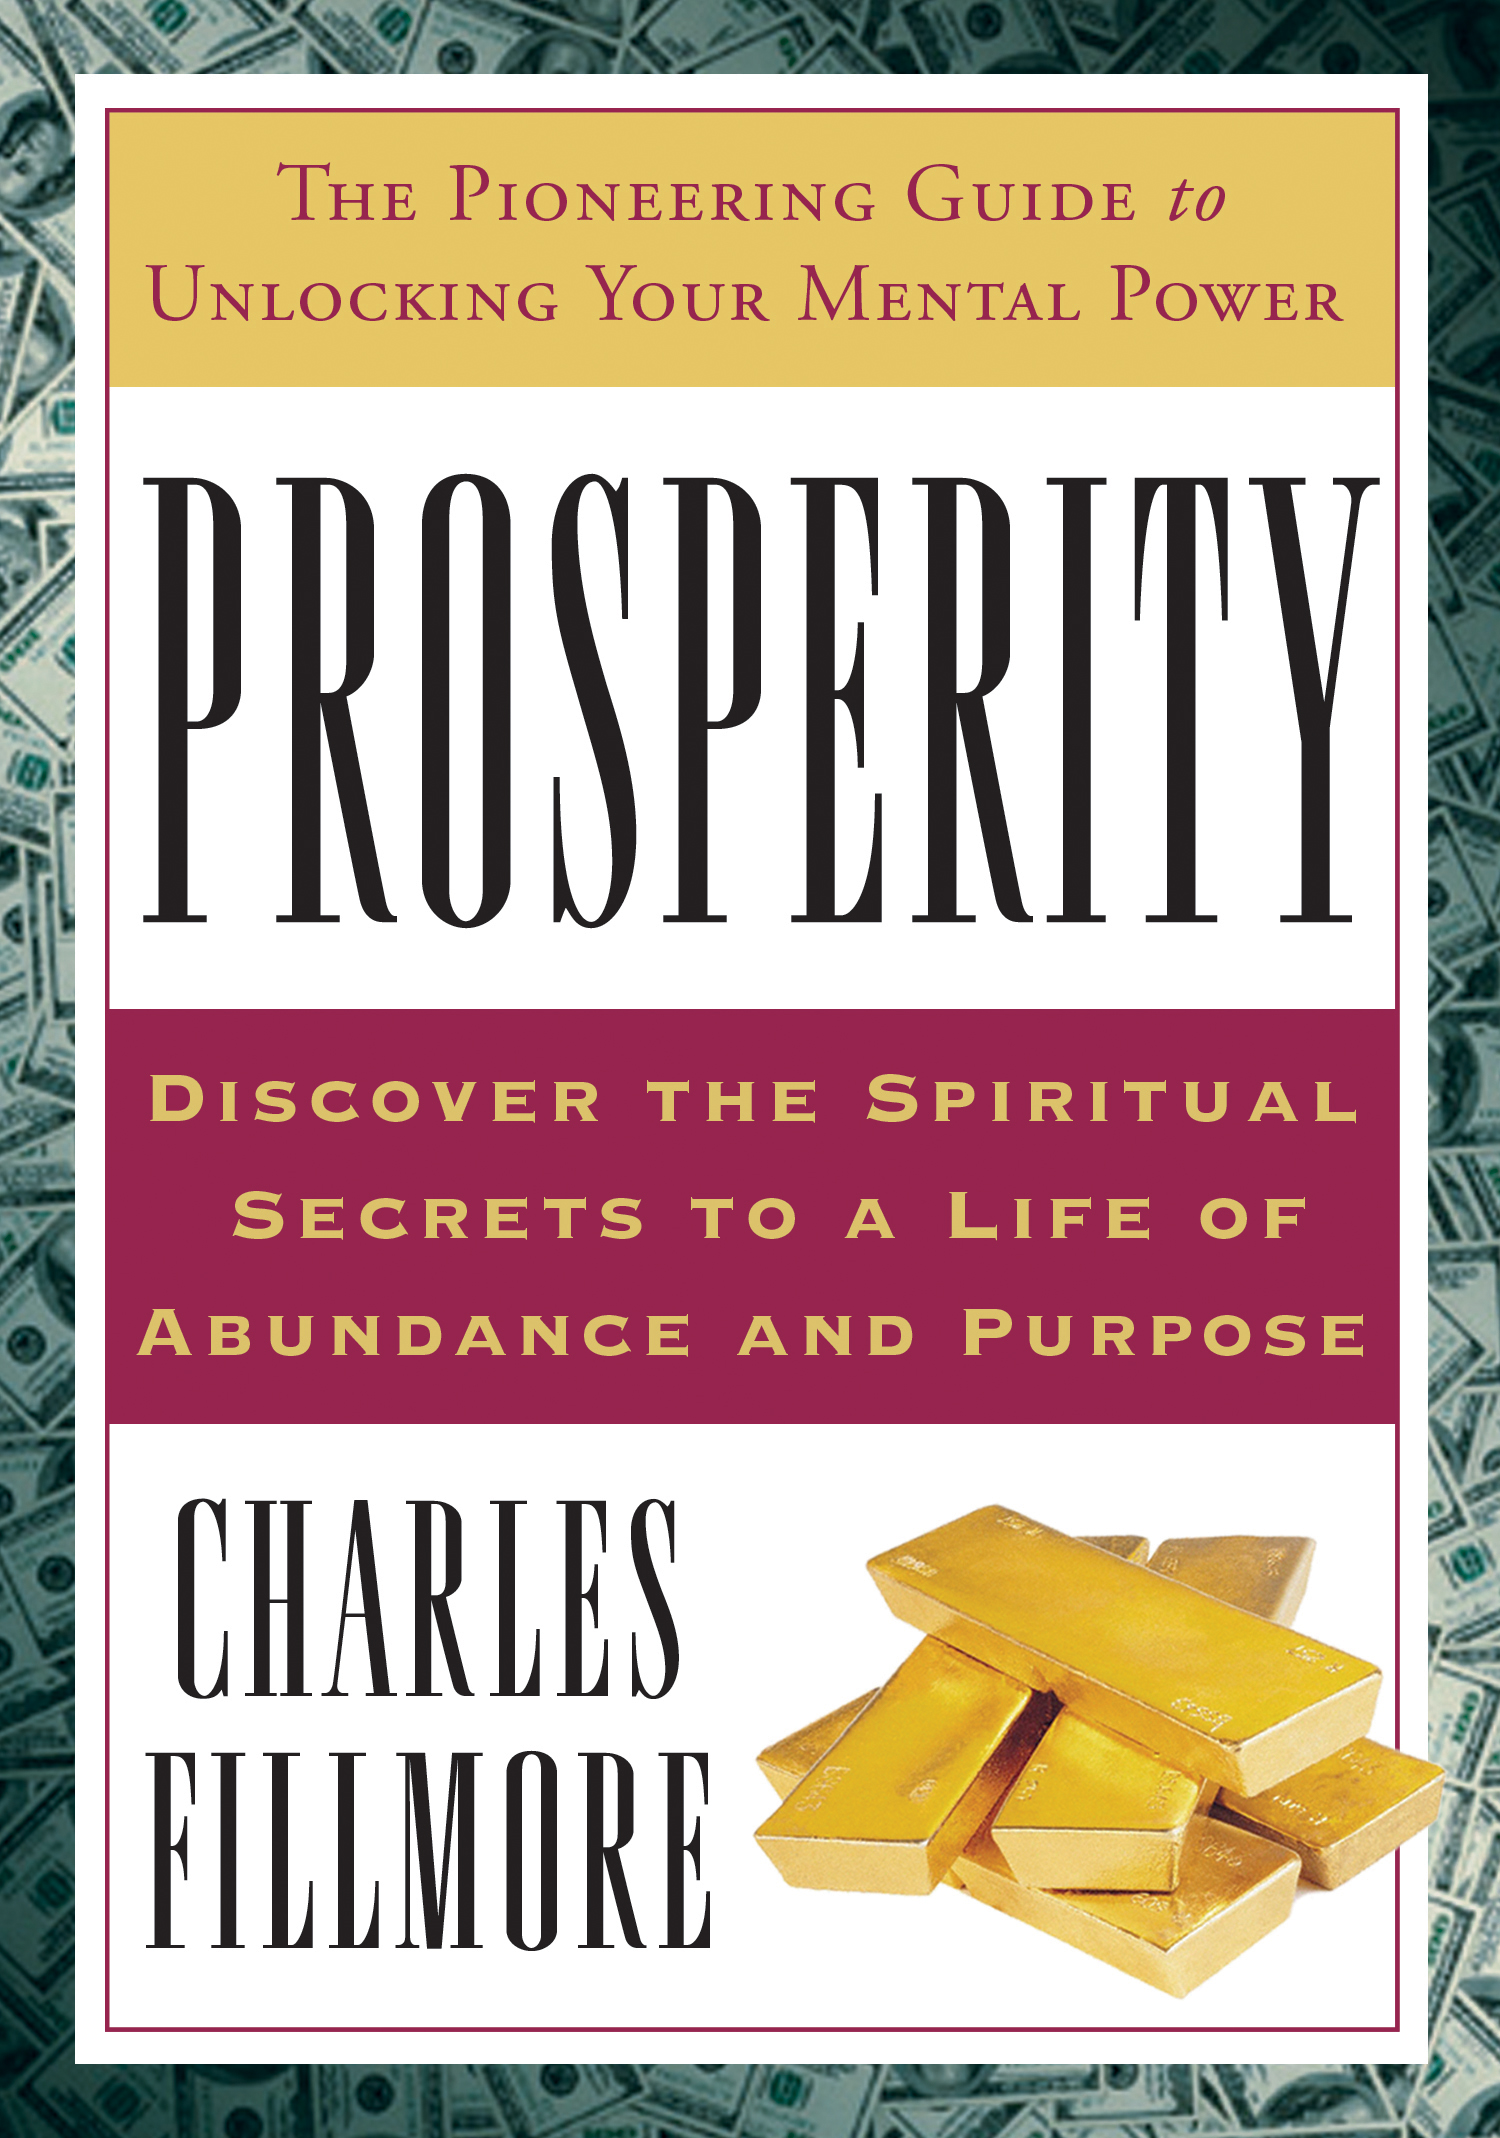 Download Ebook Prosperity by Charles Fillmore Pdf